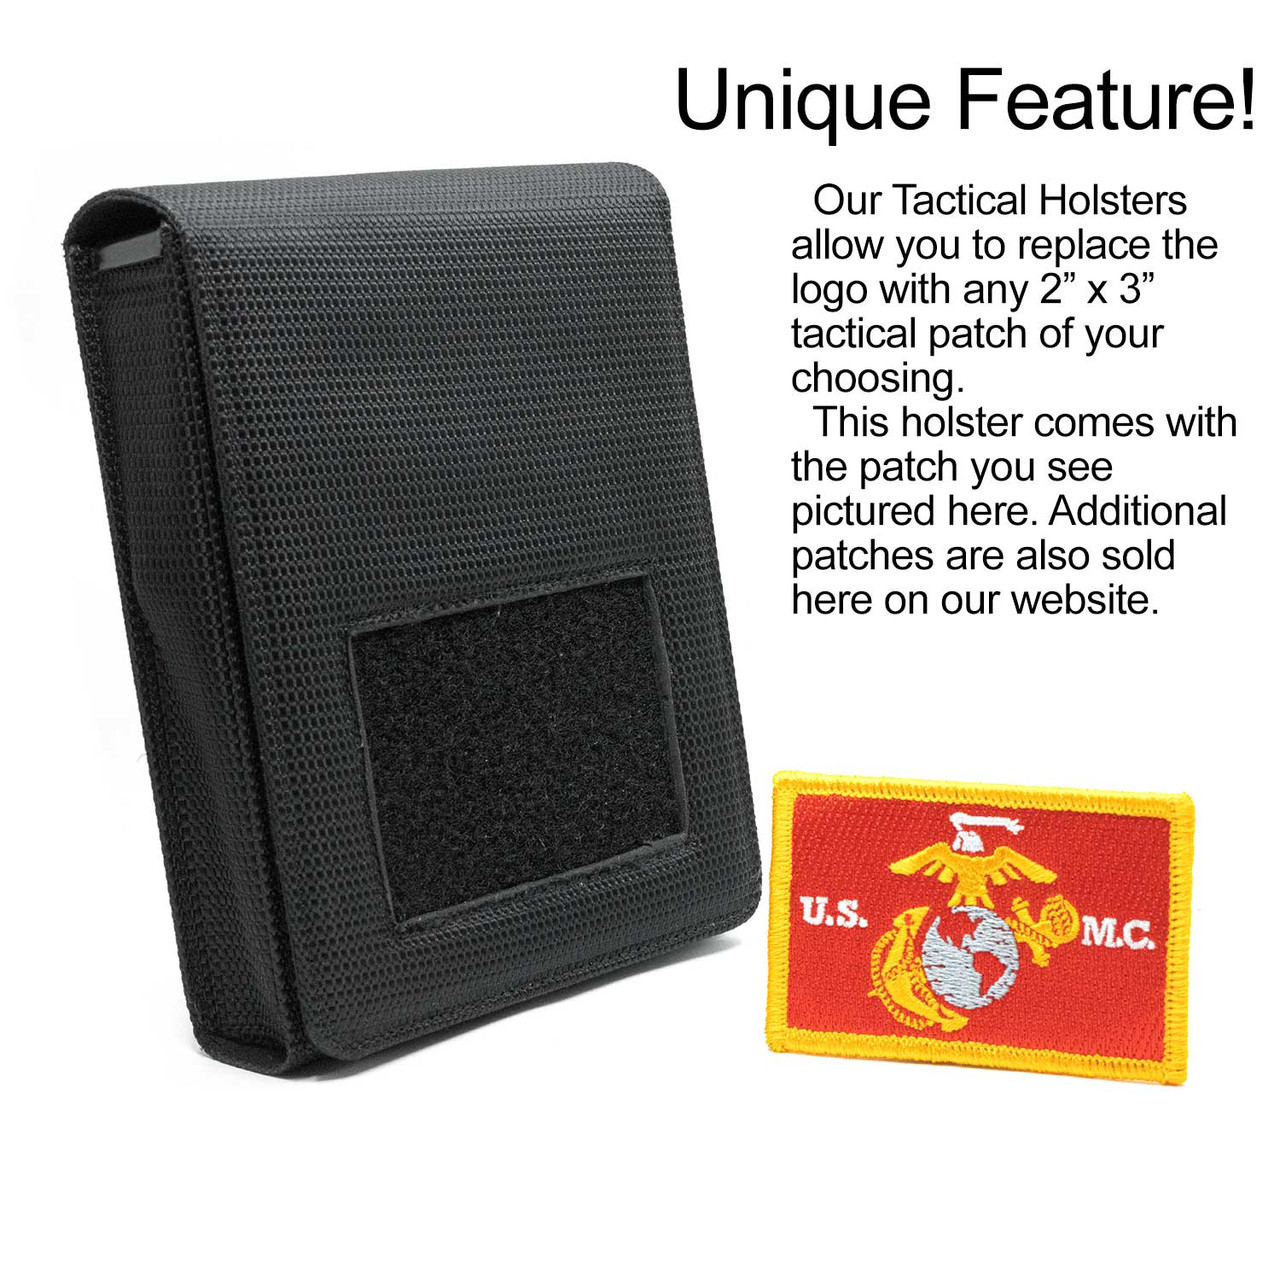 HK VP40 Marine Corps Tactical Patch Holster